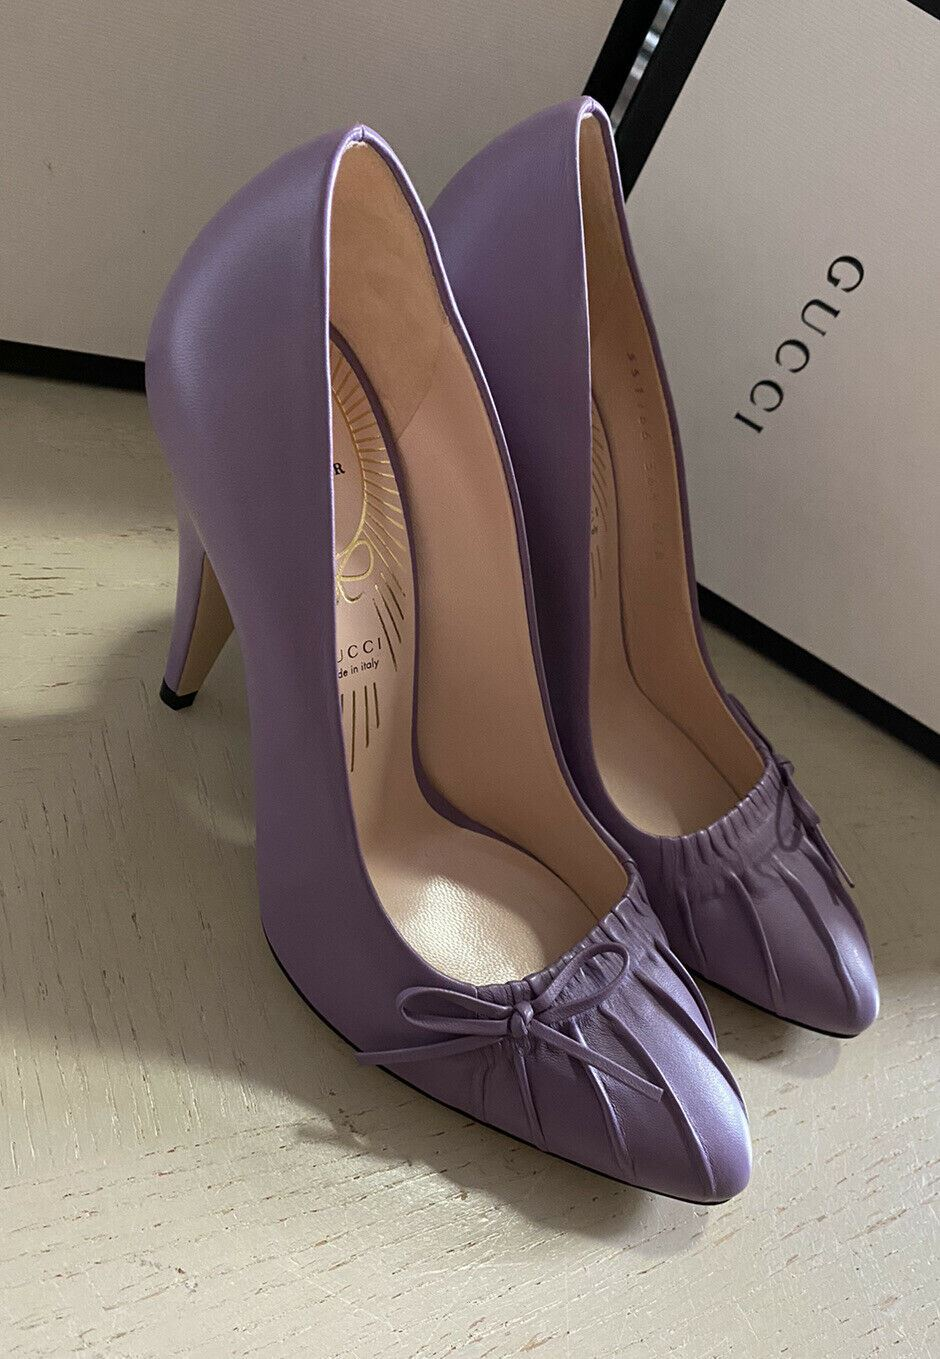 NIB $795 Gucci Women  New Lavender Leather Shoes Purple 6.5 US/36.5 Eu Italy